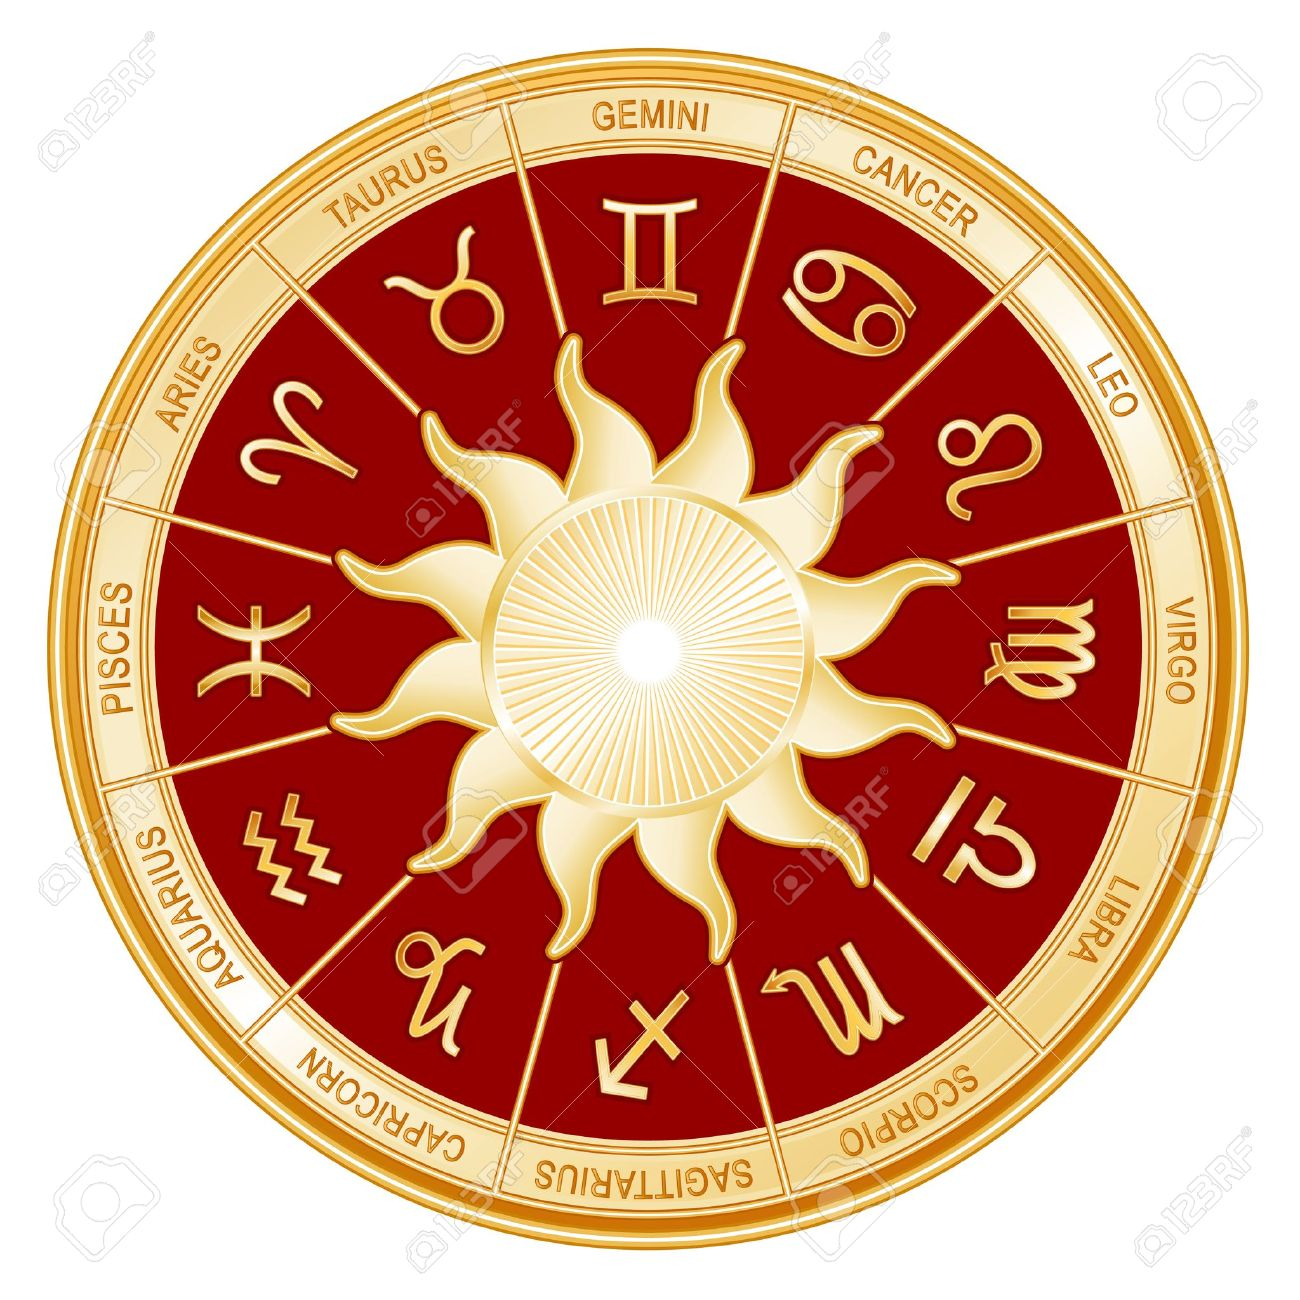 Horoscope Sun Sign Mandala with twelve gold symbols of the Zodiac  Gemini, Cancer, Leo, Libra, Virgo, Scorpio, Sagittarius, Capricorn, Aquarius, Pisces, Aries, Taurus Stock Vector - 14783443